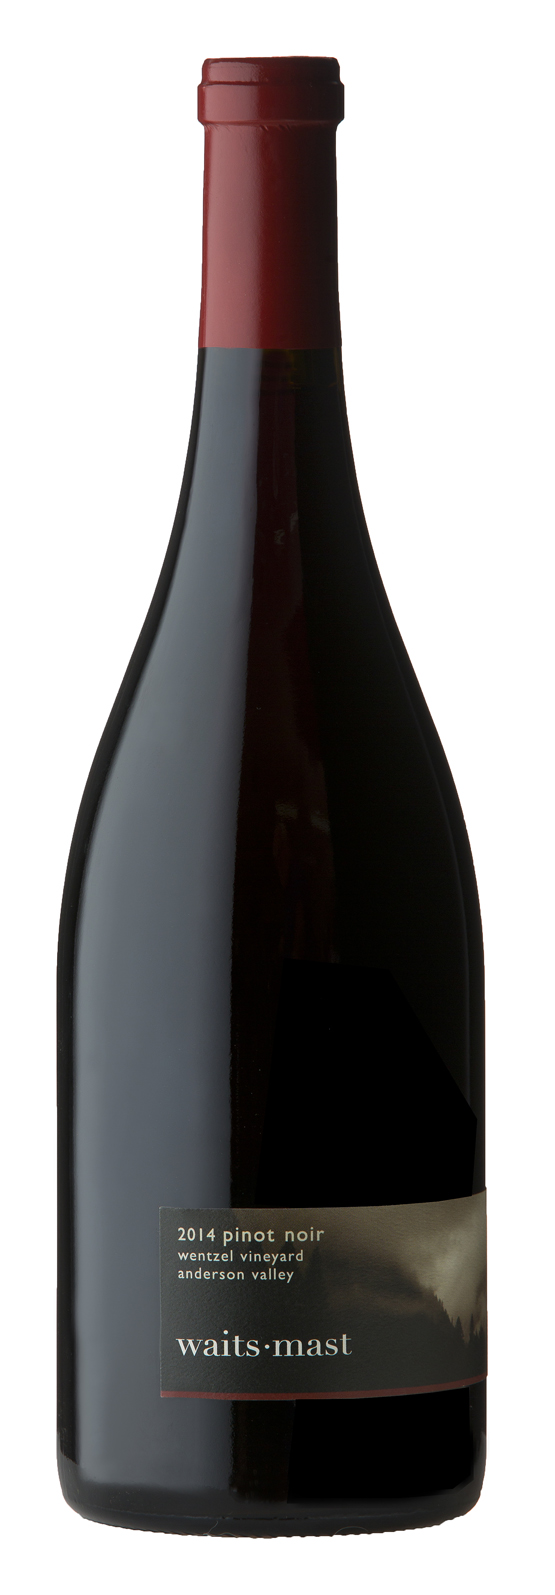 2014 Waits-Mast Pinot Noir, Wentzel Vineyard, Anderson Valley